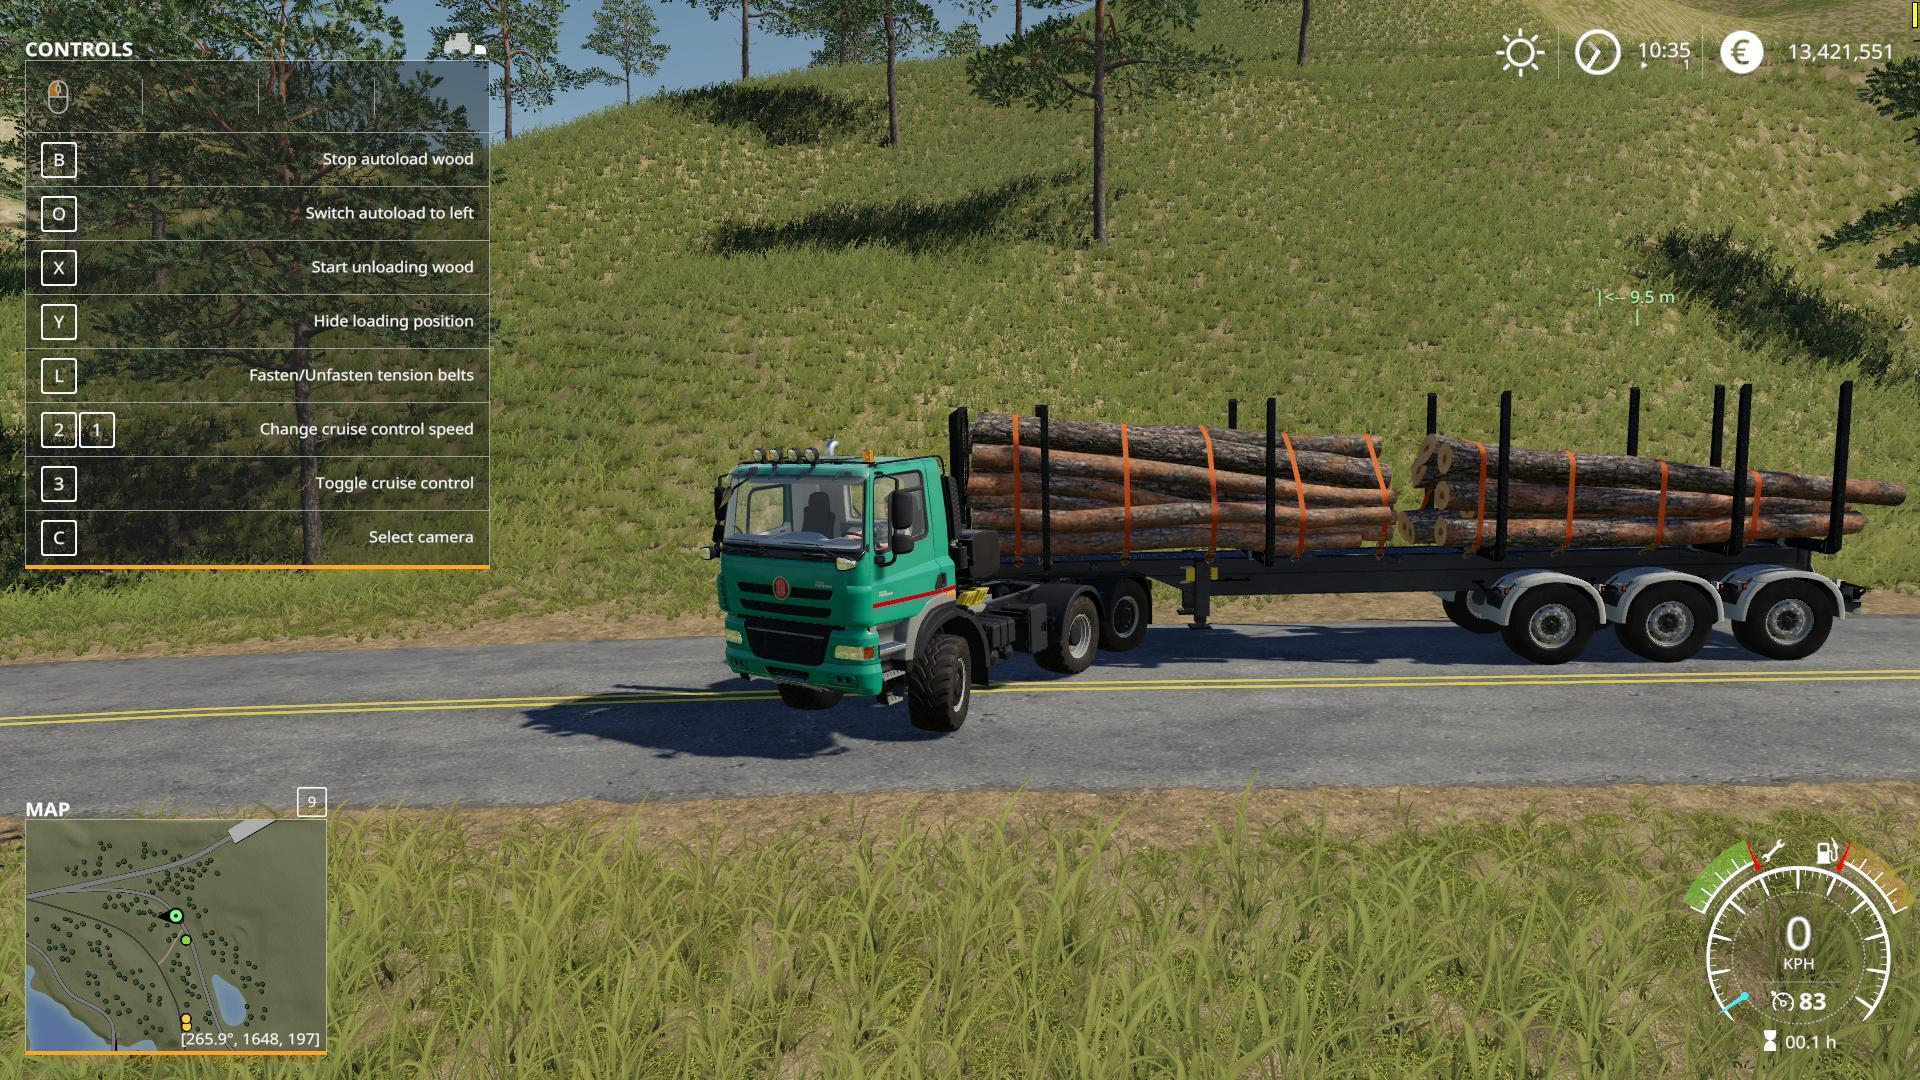 Timber Runner Wide With Autoload Wood v1 0 FS 19